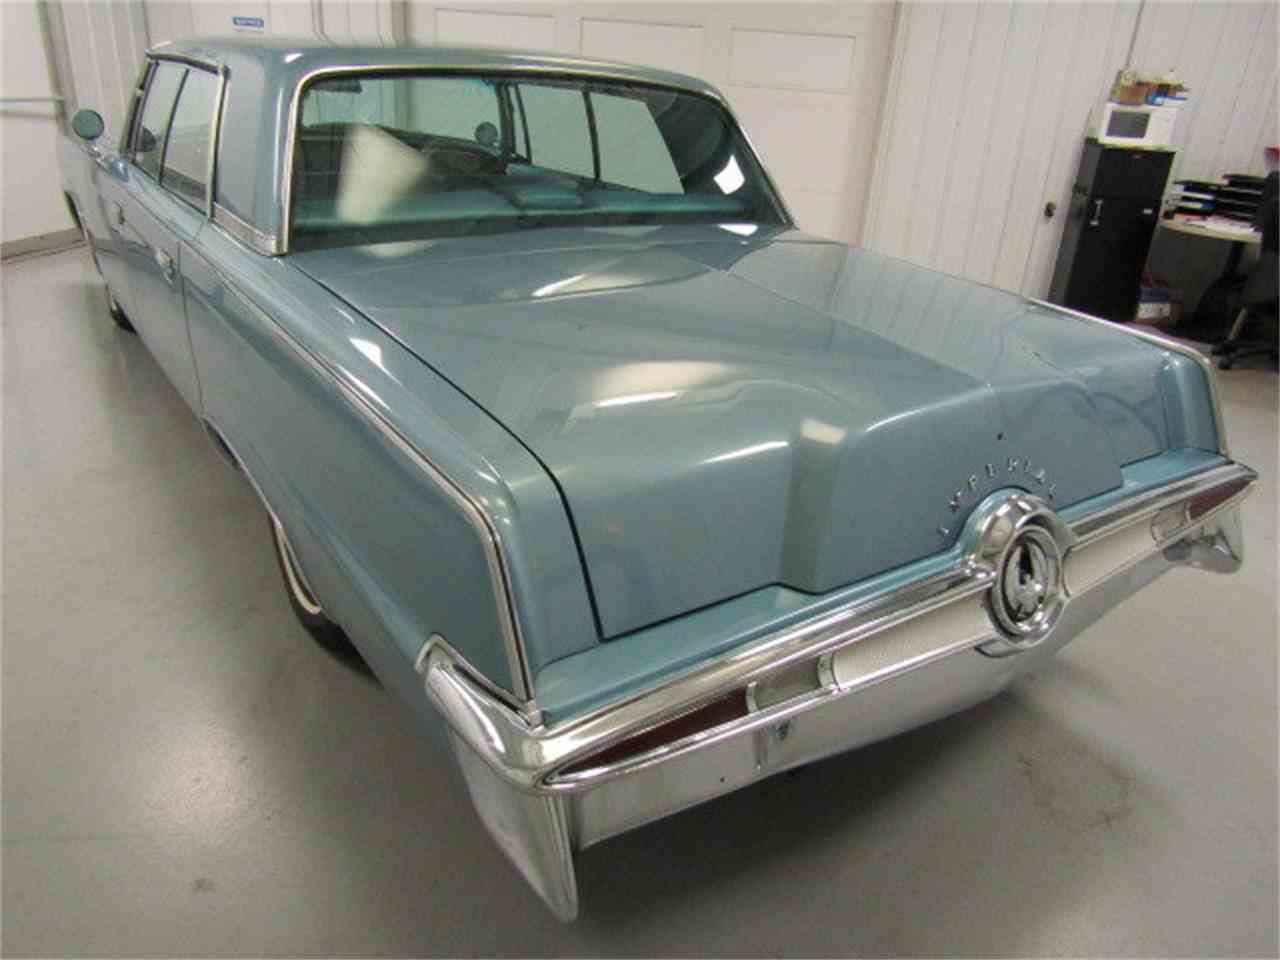 Large Picture of Classic '64 Chrysler Imperial - $21,970.00 Offered by Duncan Imports & Classic Cars - JLDR